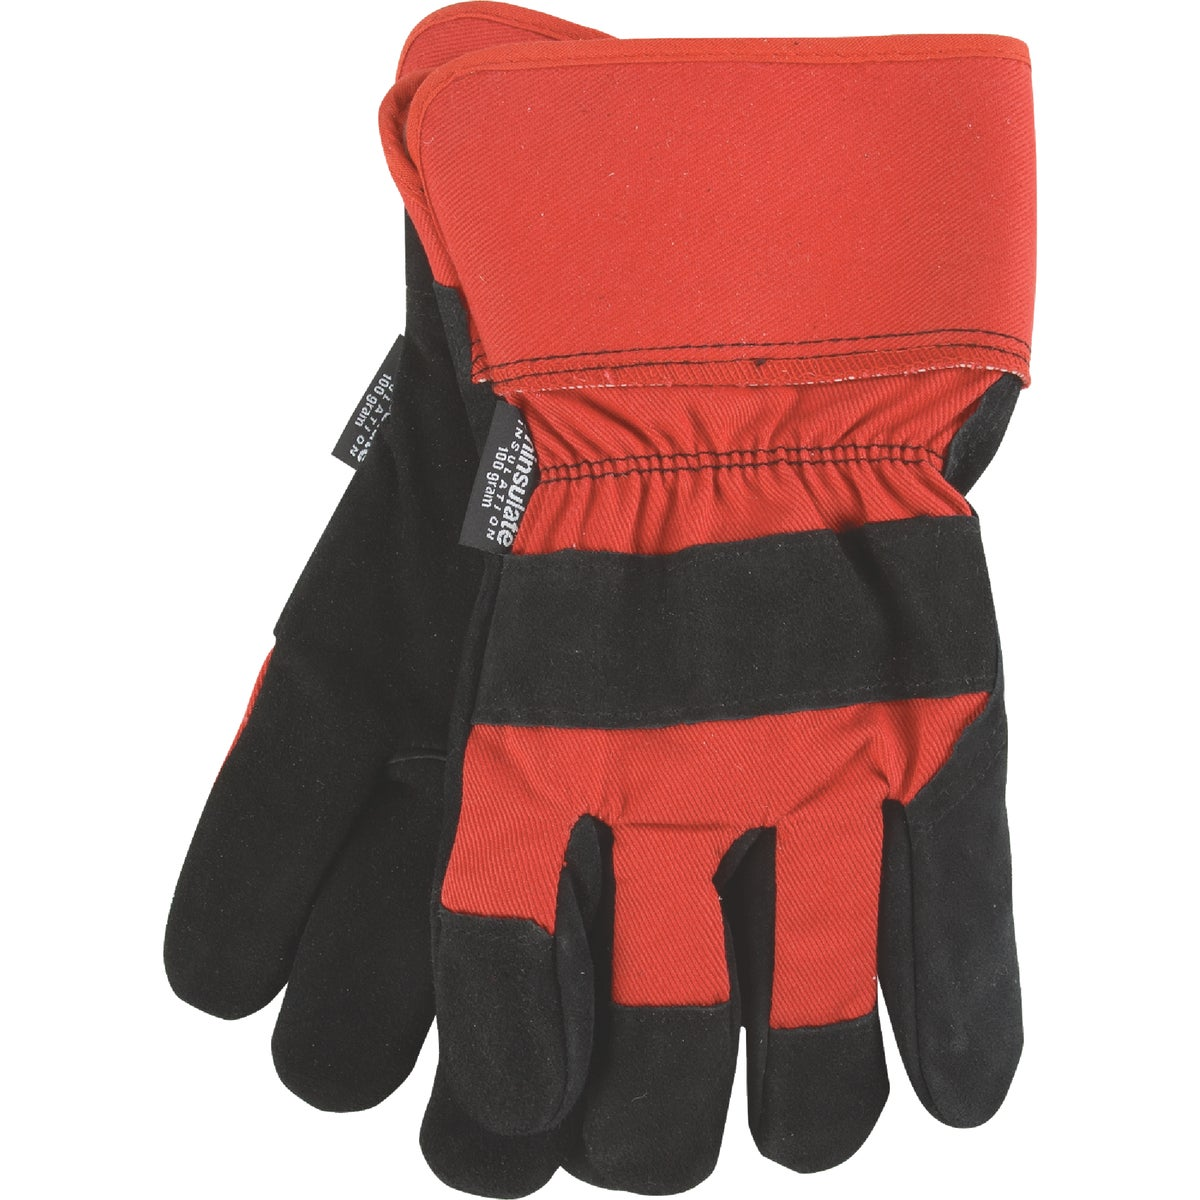 MED MEN'S COWHIDE GLOVE - 750813 by Do it Best